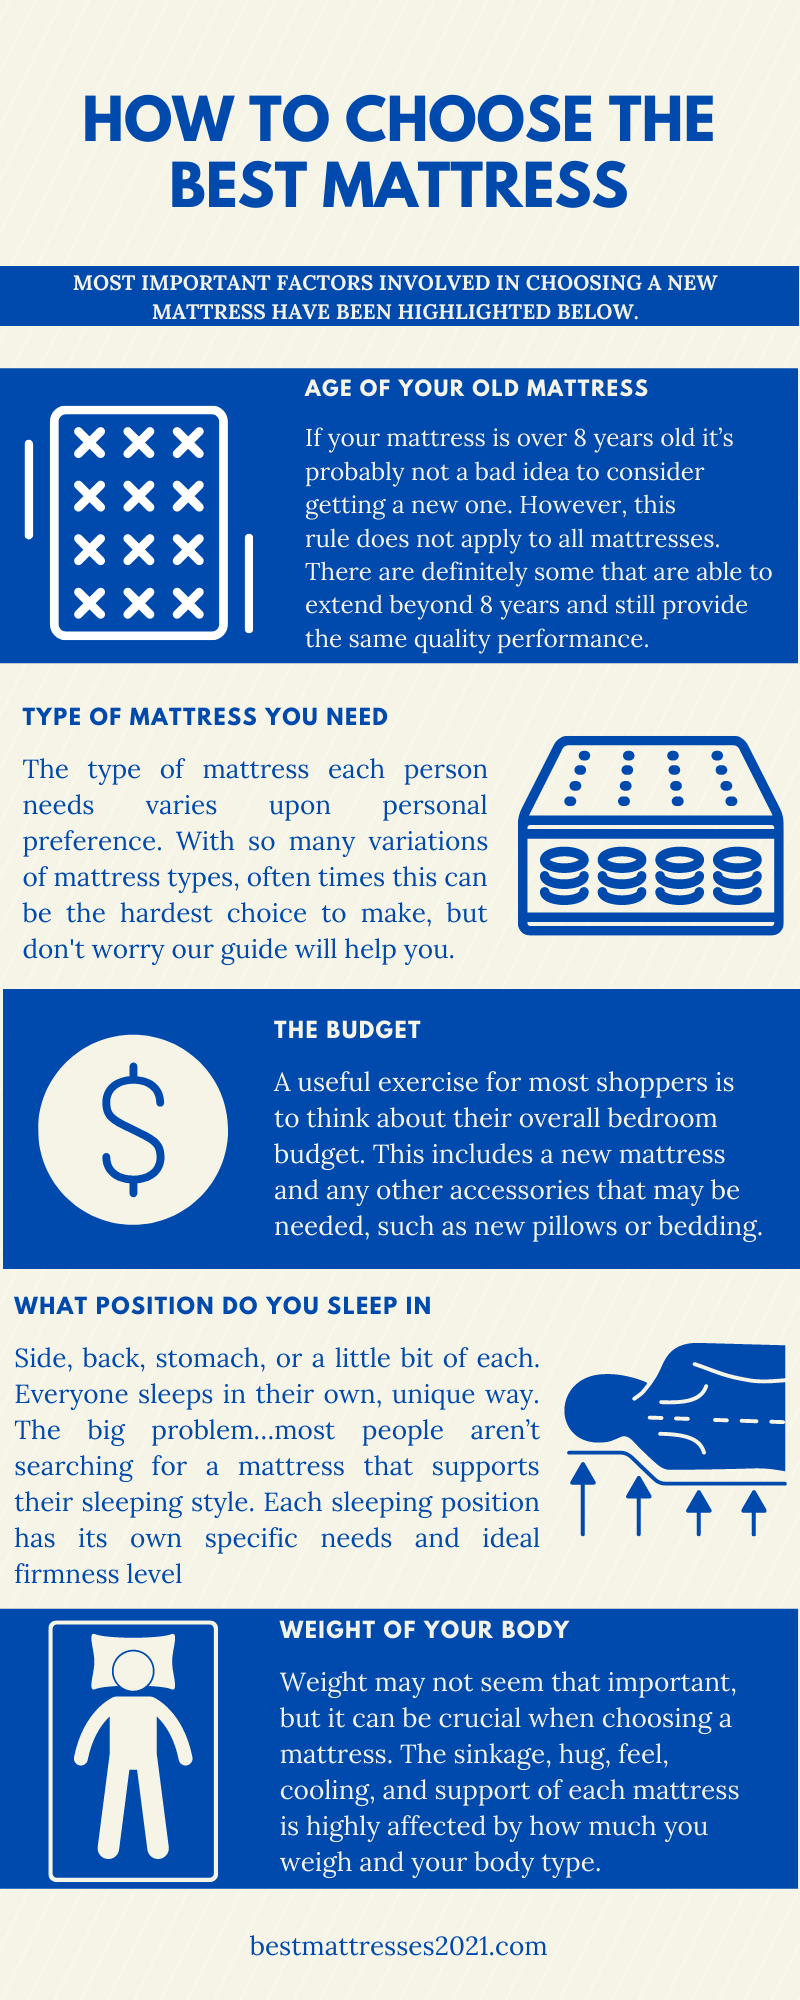 How to Choose the Best Mattress 2021